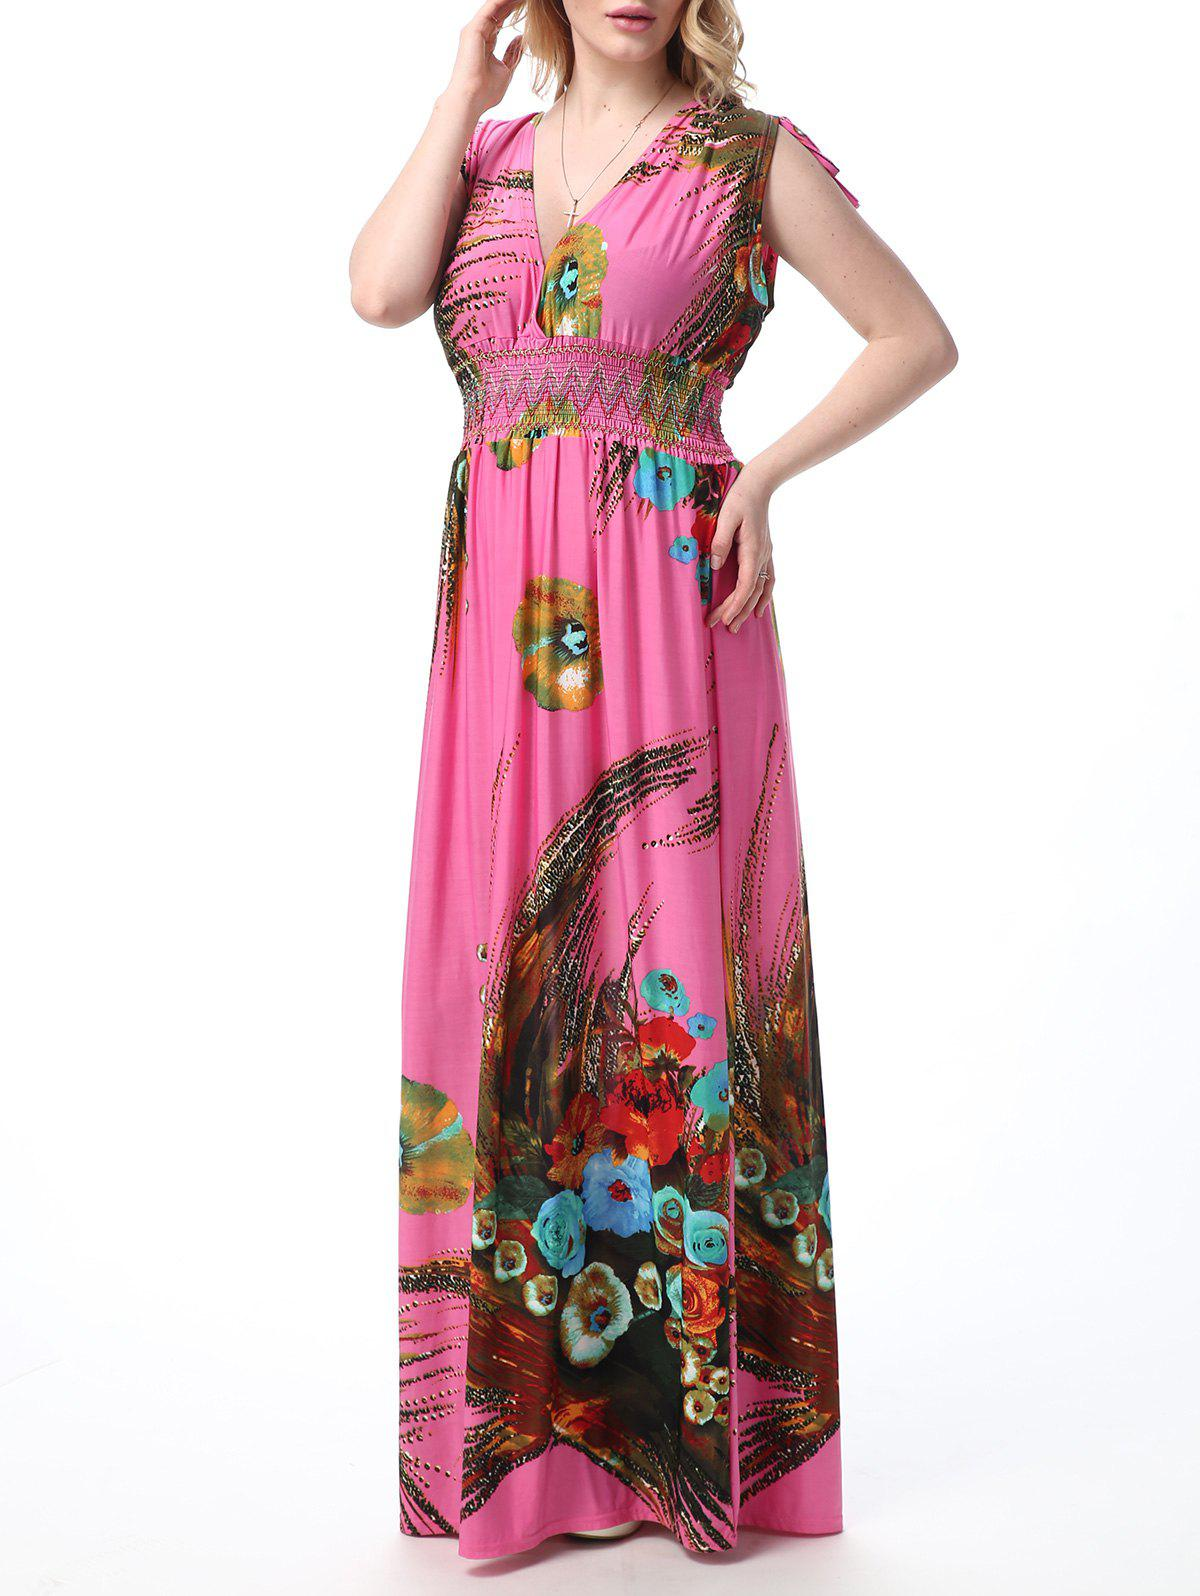 Fancy Floral Print Empire Waist Floor Length Boho Dress